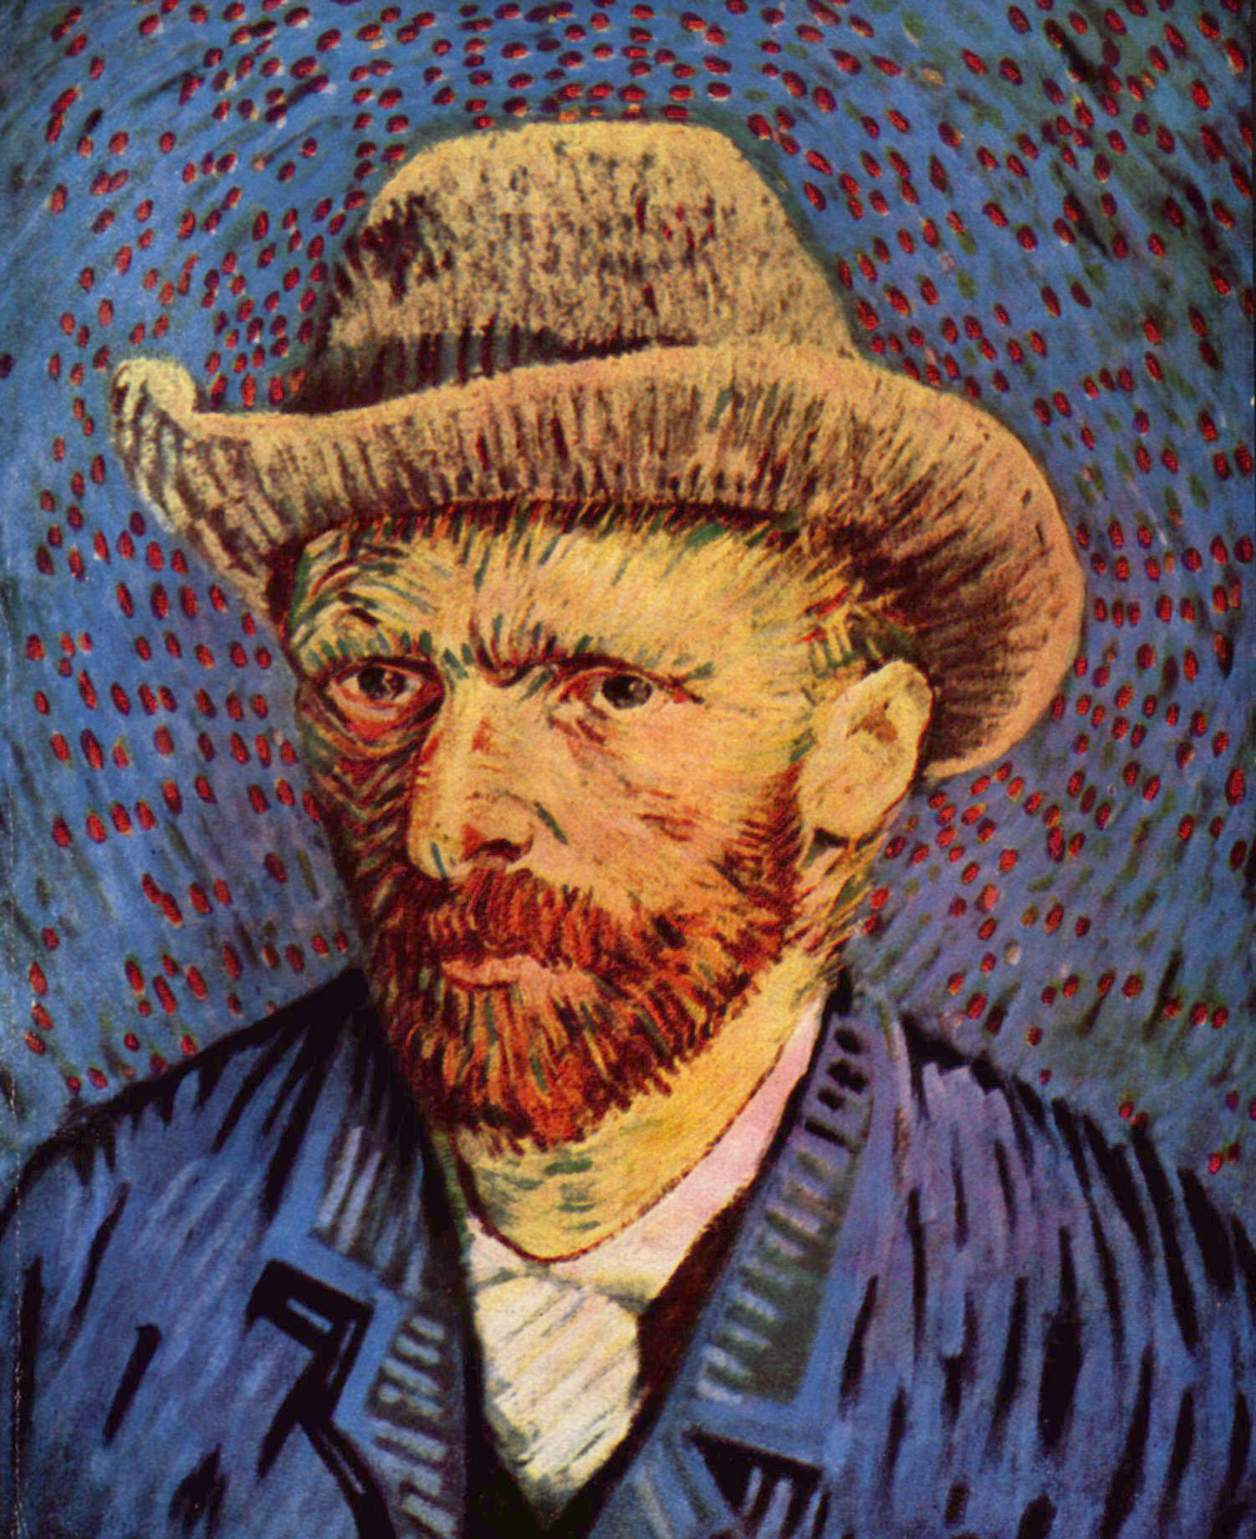 http://upload.wikimedia.org/wikipedia/commons/6/60/Vincent_Willem_van_Gogh_107.jpg